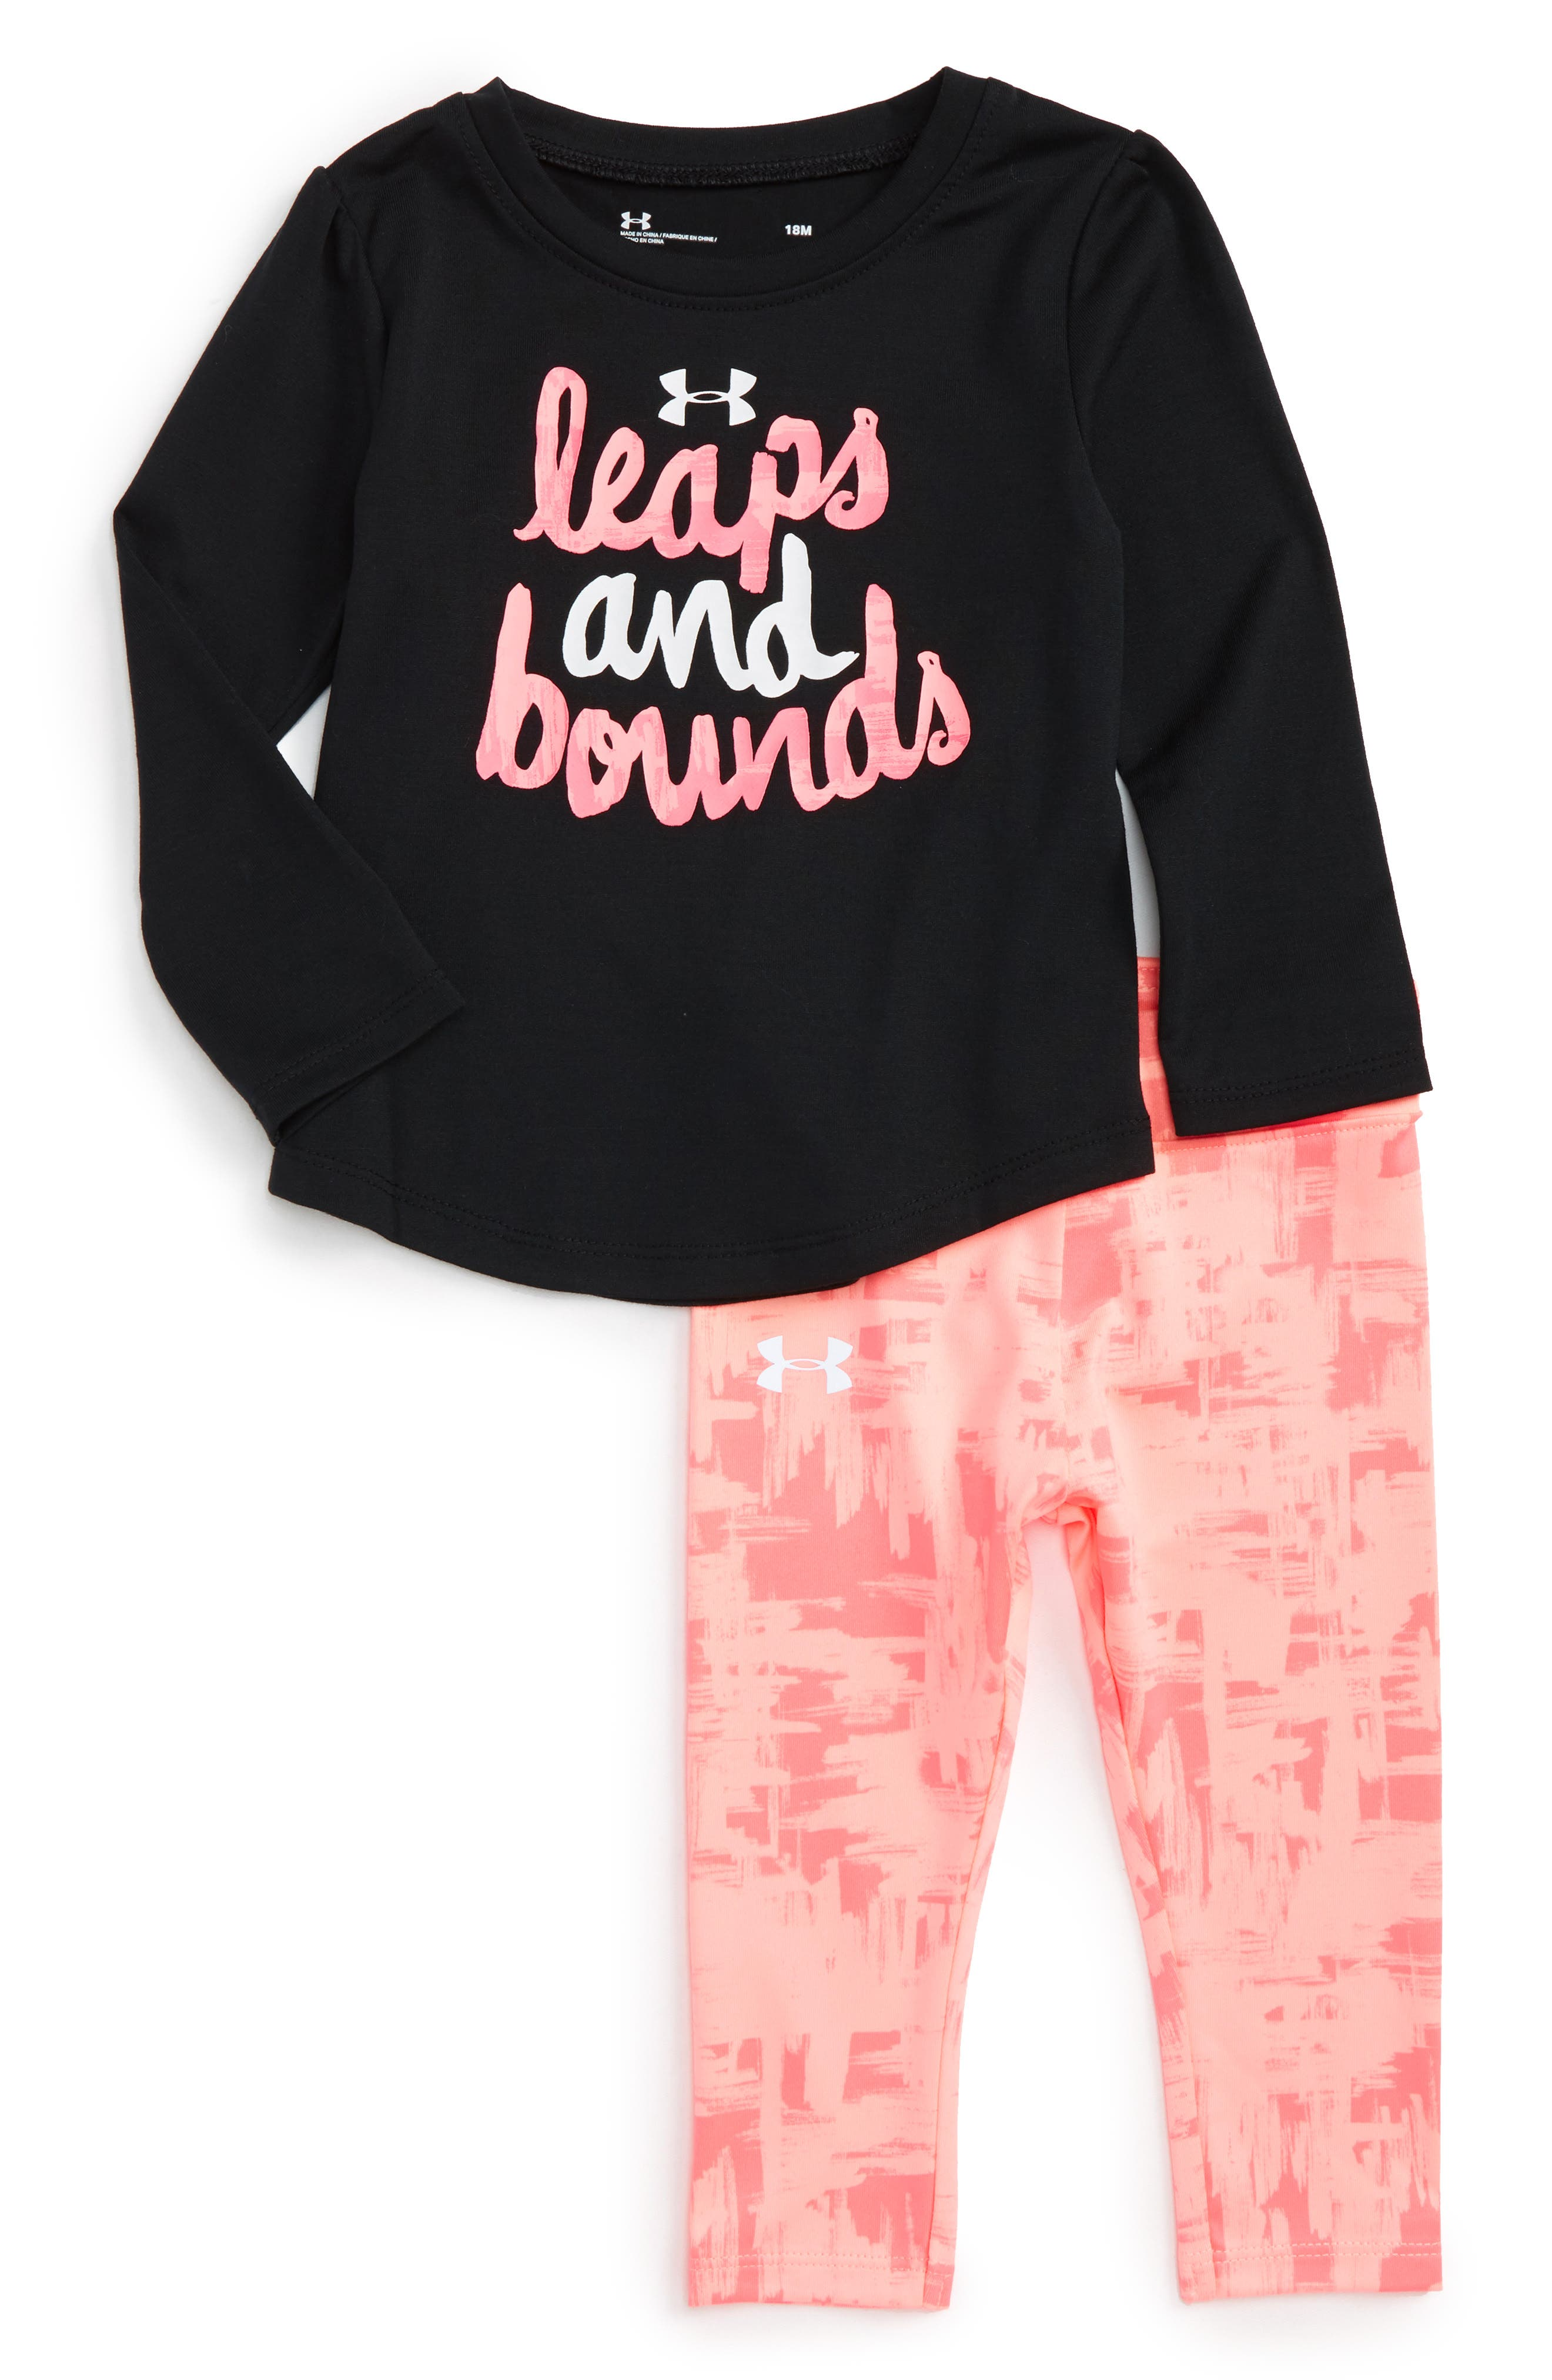 Alternate Image 1 Selected - Under Armour Leaps & Bounds Tee & Pants Set (Baby Girls)